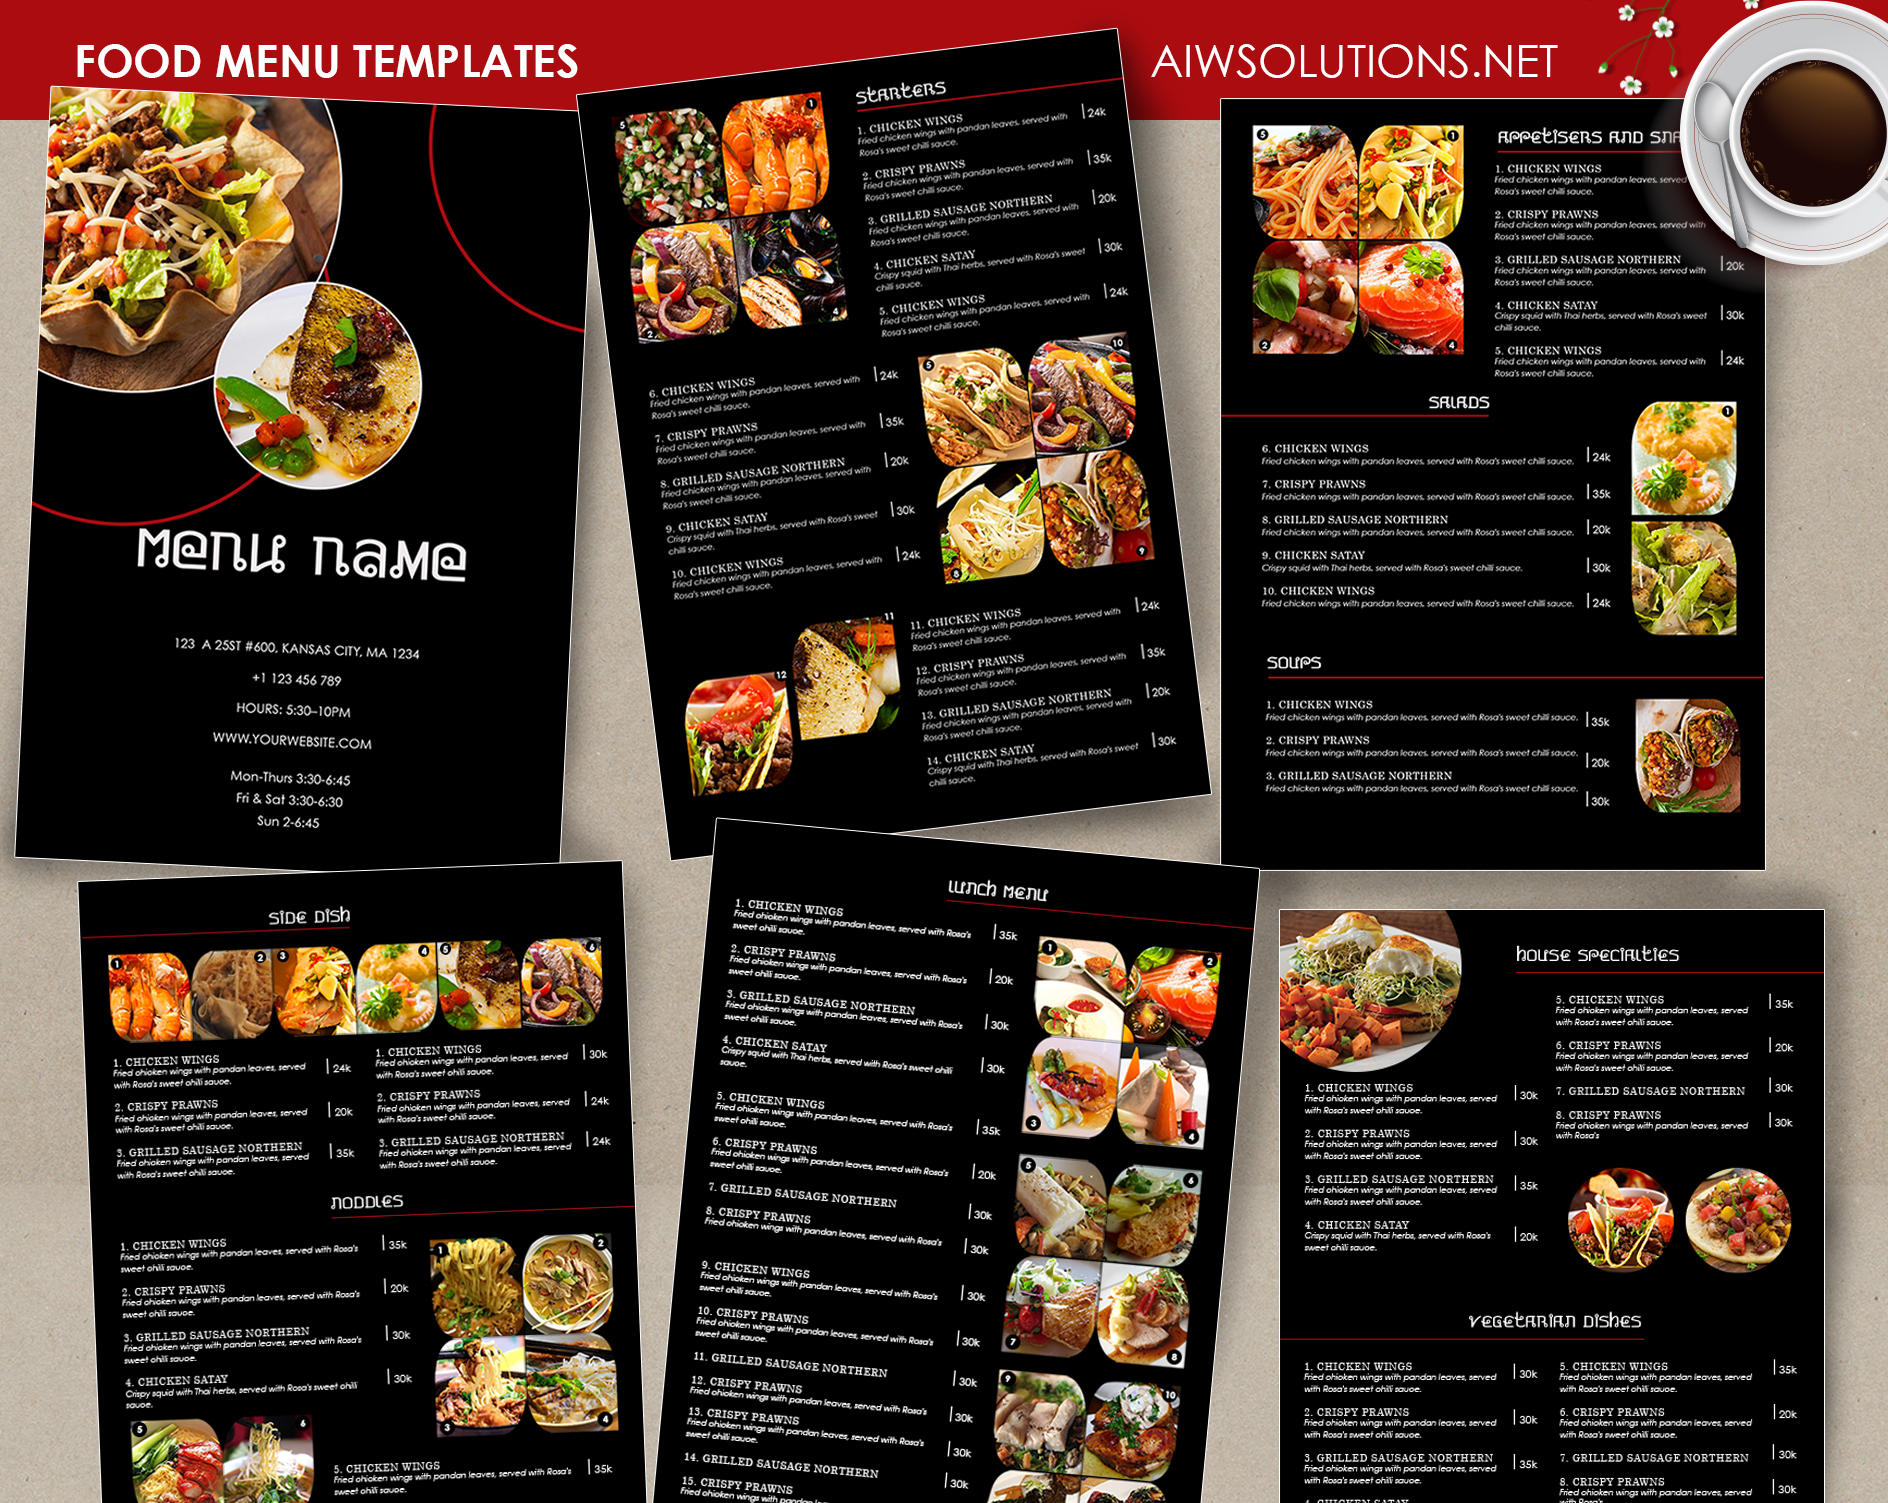 design templates menu wedding food bar - Restaurant Menu Design Ideas